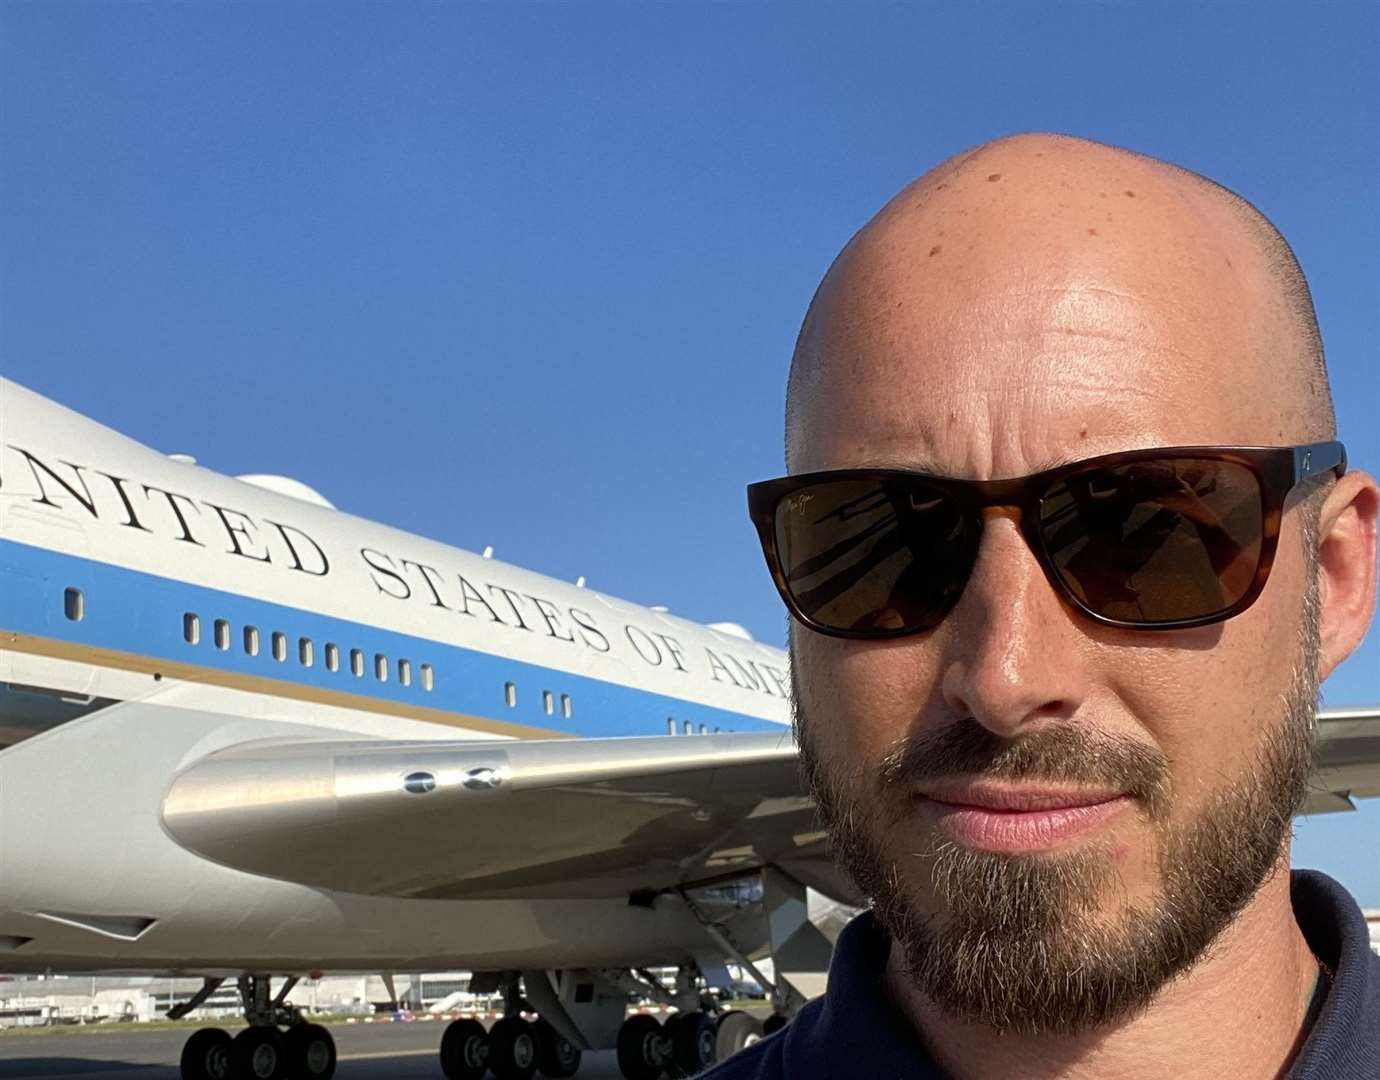 Army veteran Kemsley Whittlesea outside Air Force One at Heathrow Airport. Picture: Kemsley Whittlesea